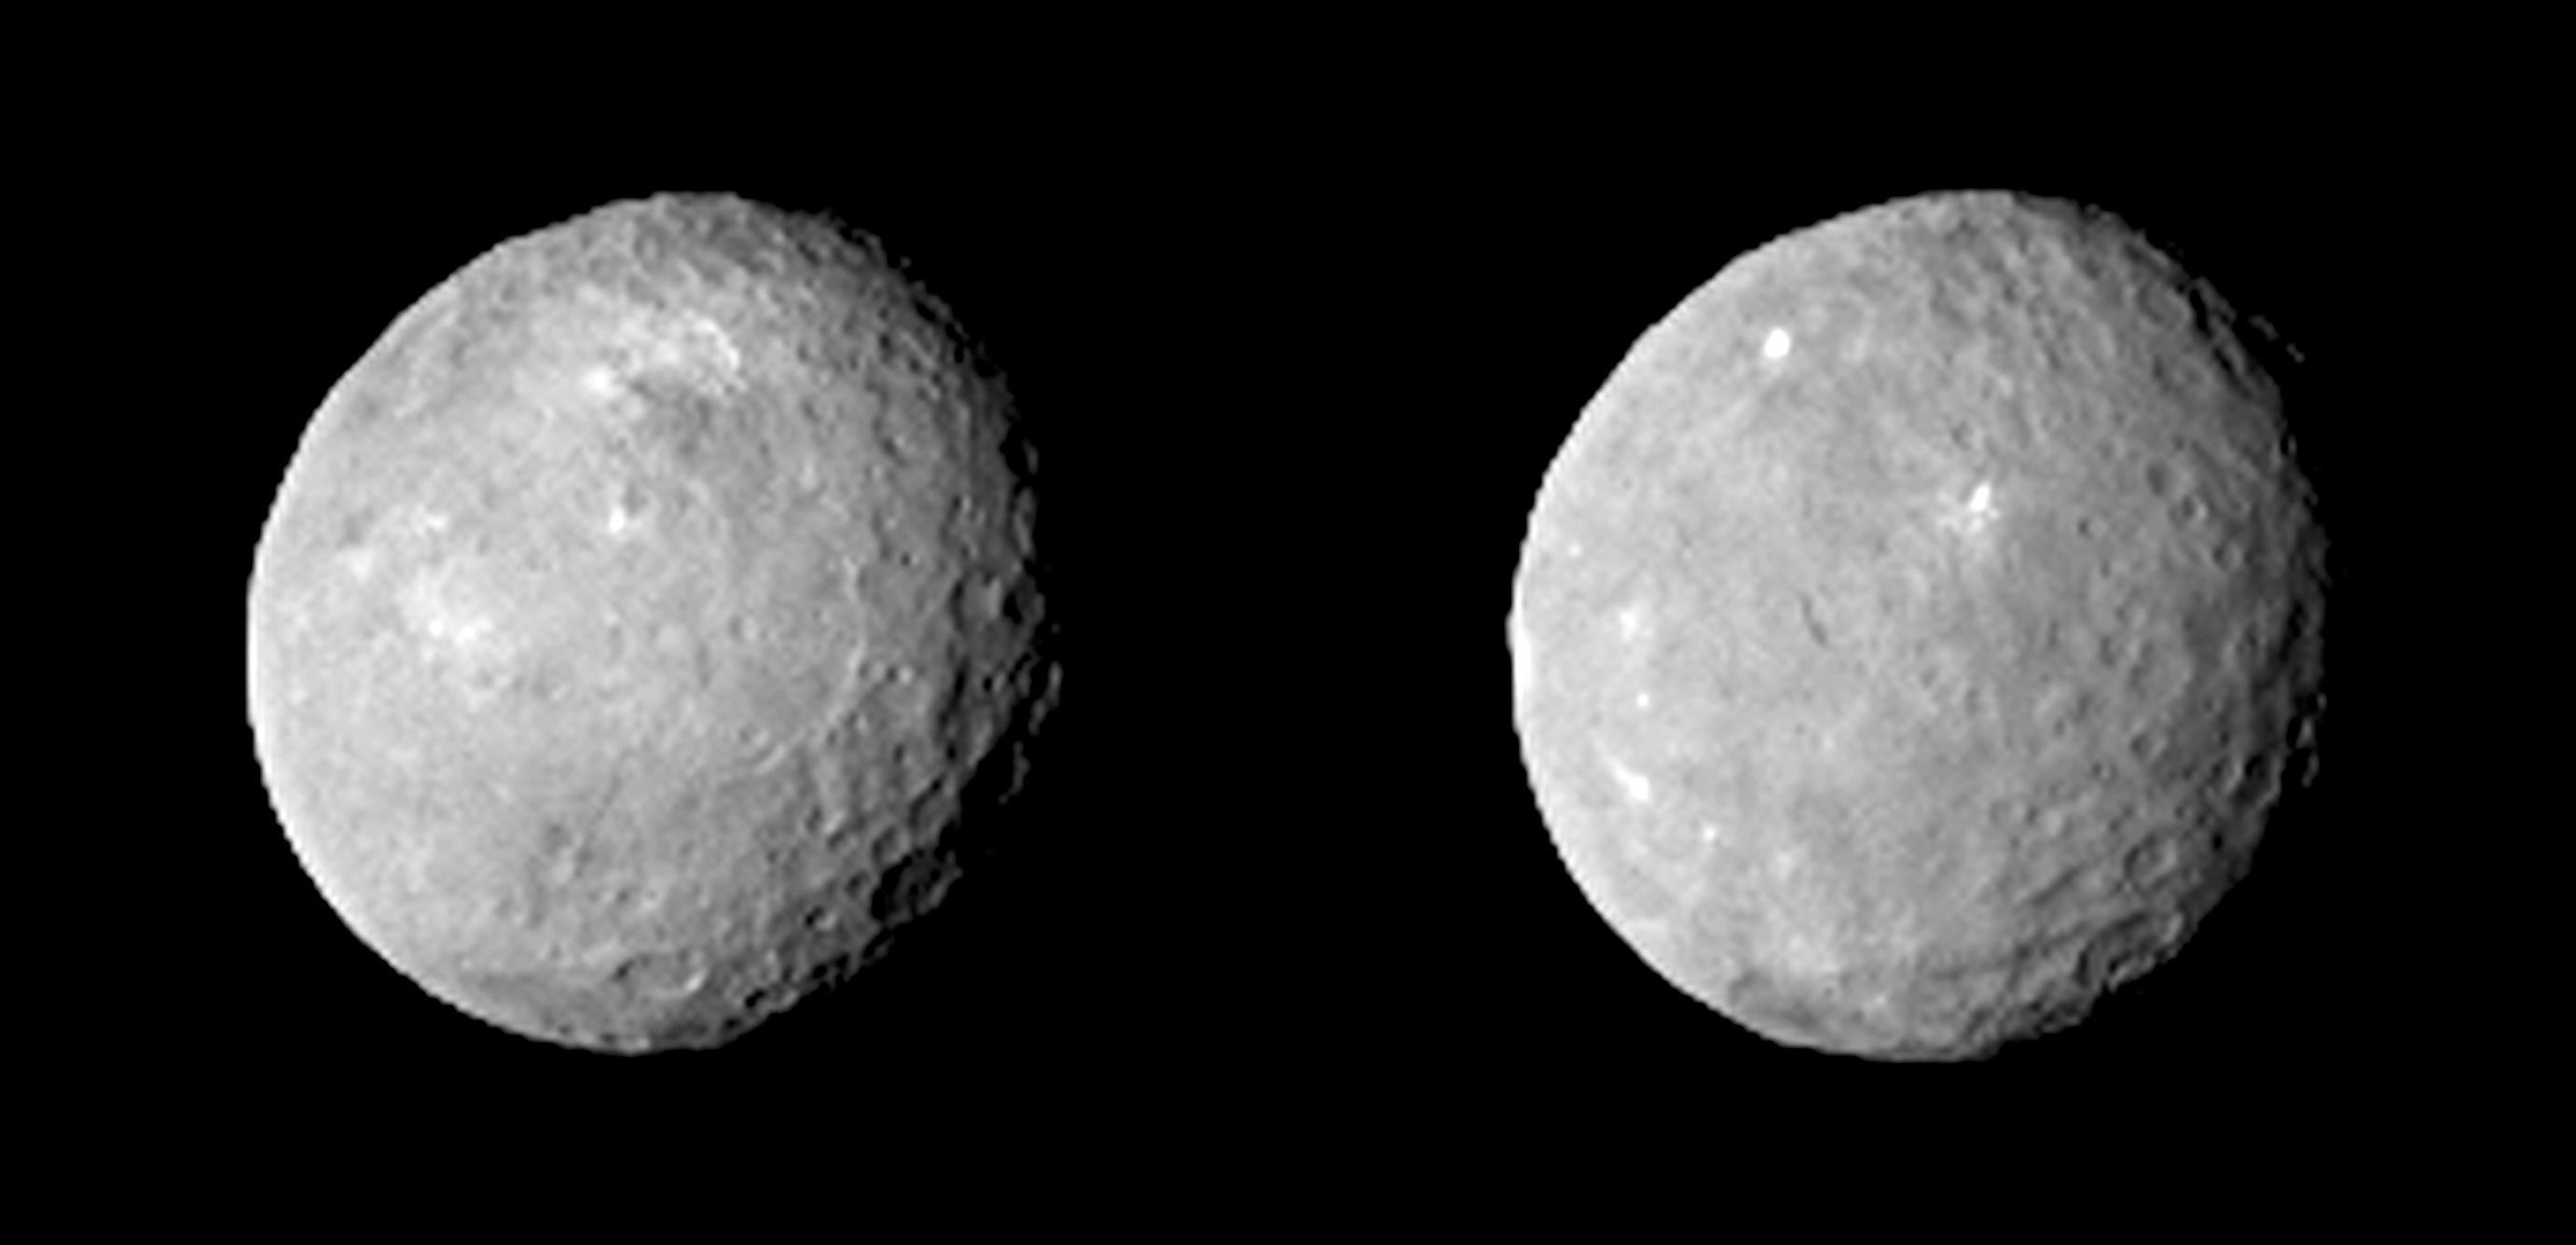 Mysterious Bright Spots Shine on Dwarf Planet Ceres (Photos)